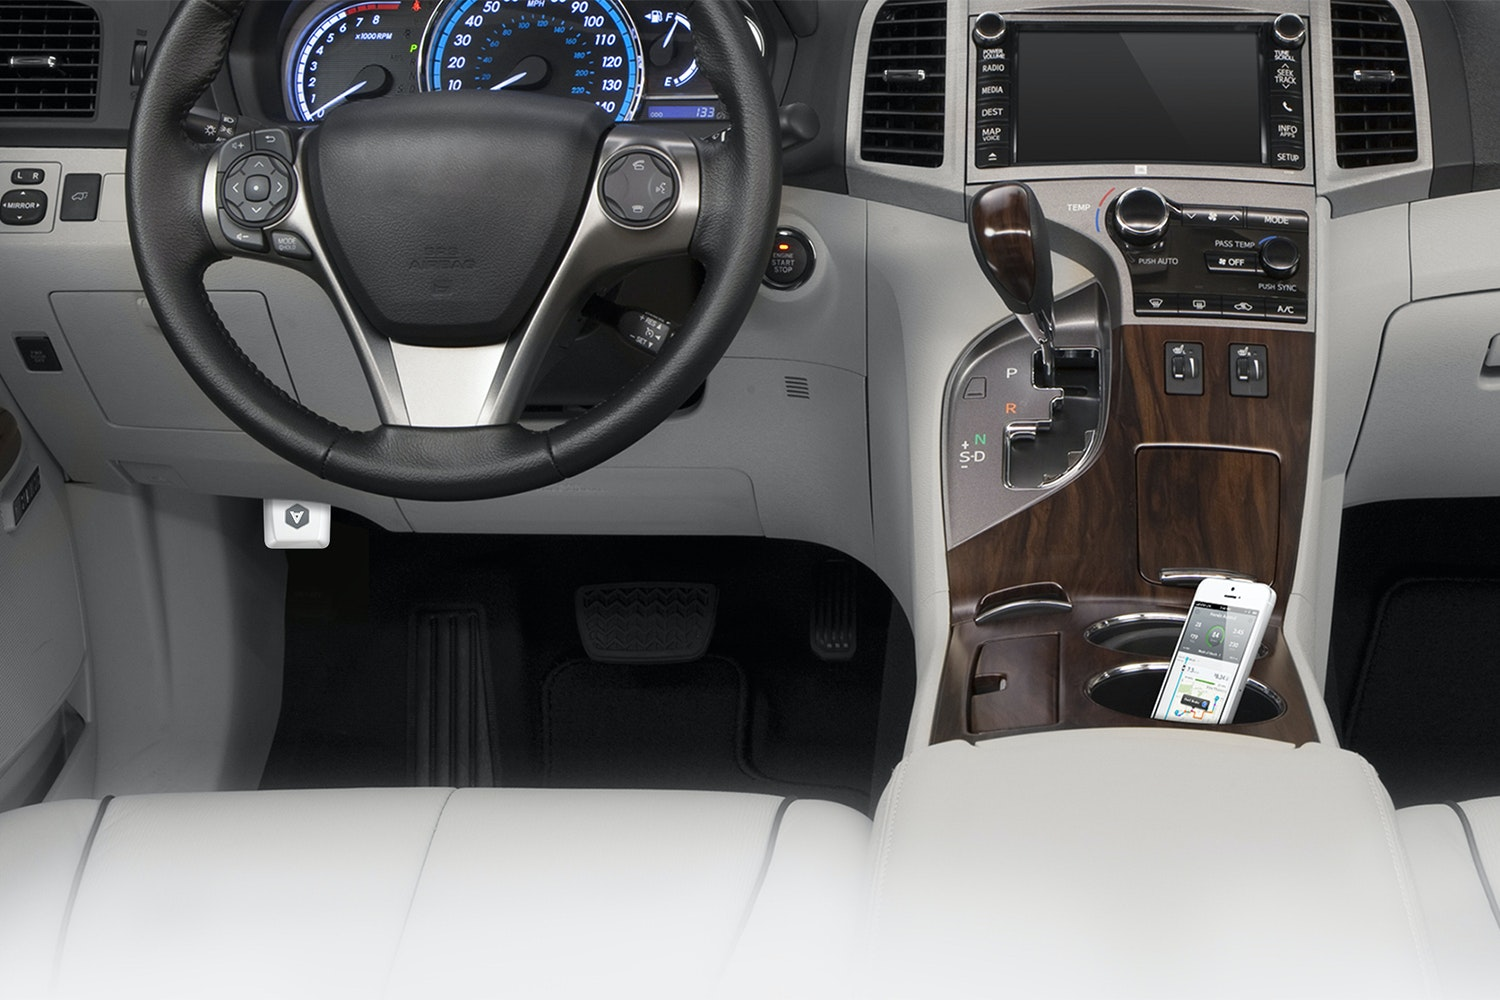 Automatic Connected Car Adapter (Gen 2)